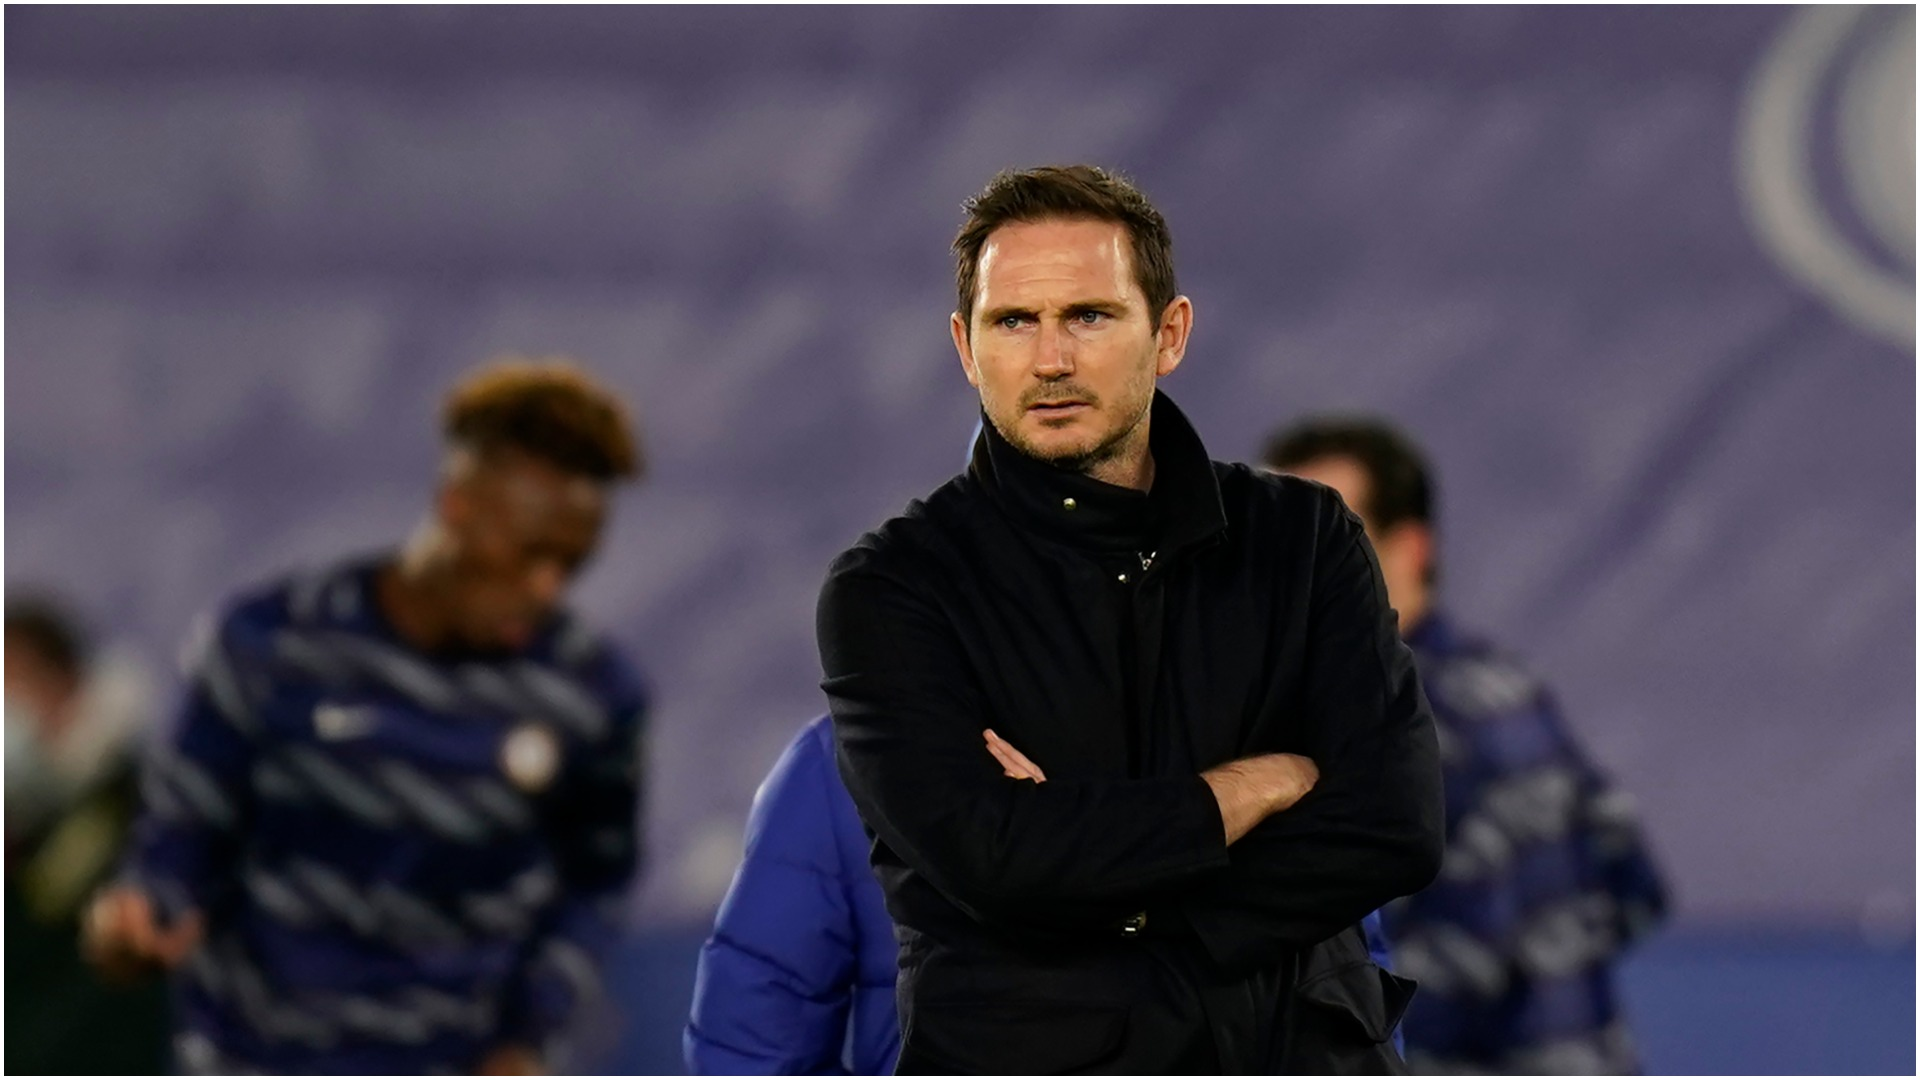 Chelsea sack Lampard: Returning heroes - the hits and misses